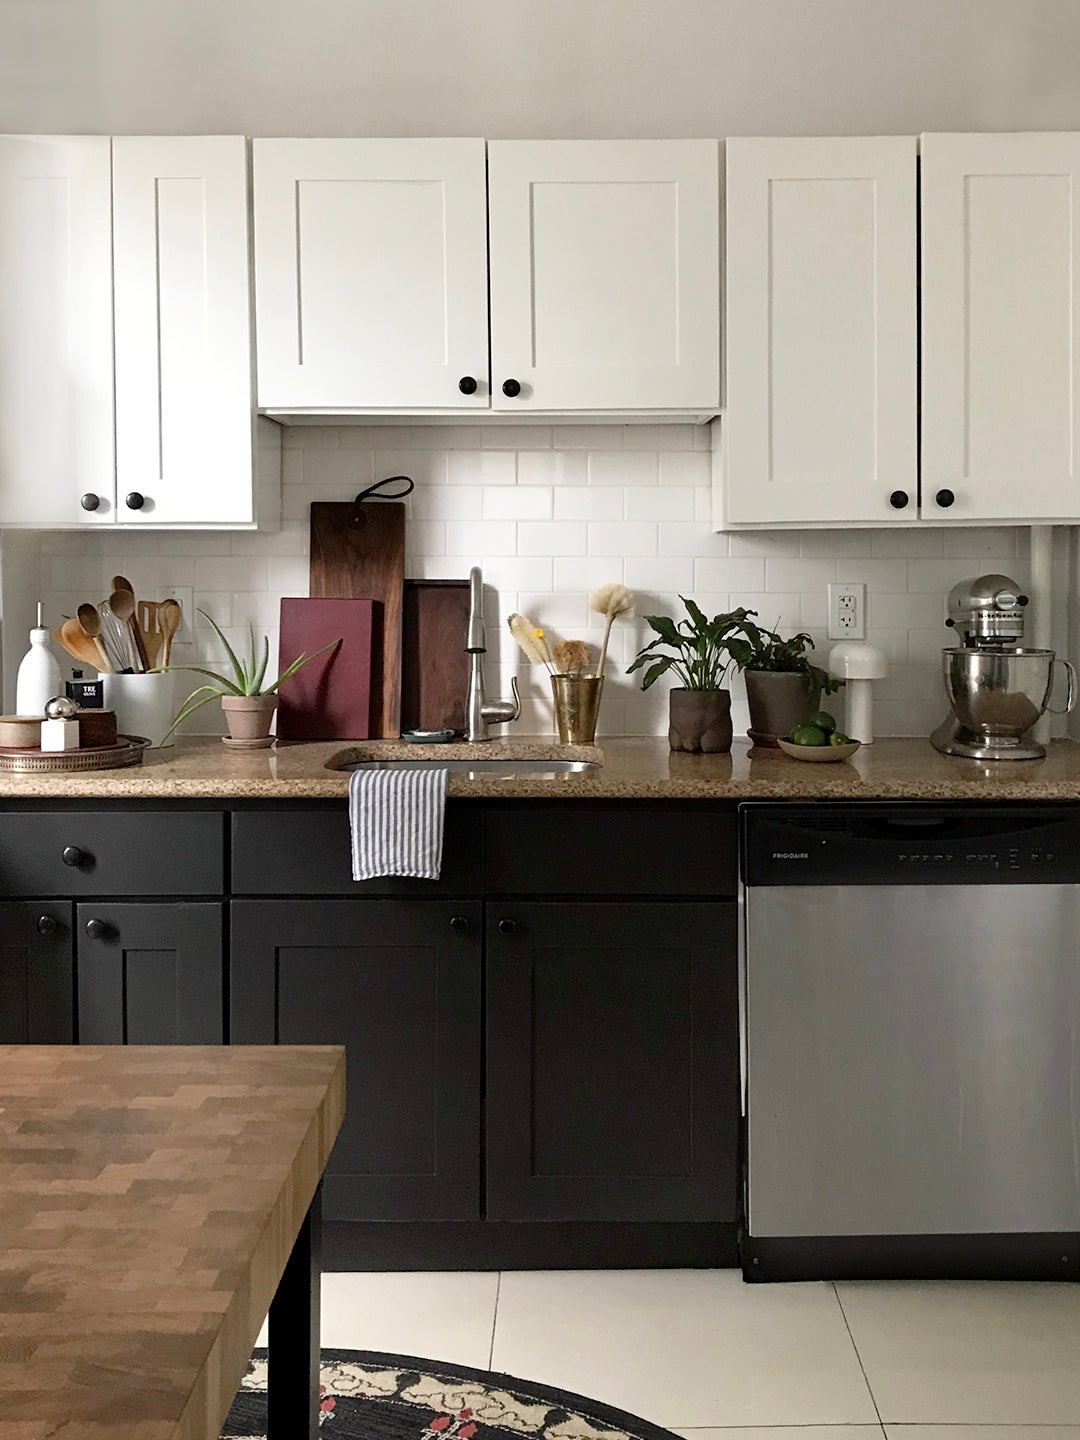 00-FEATURE-How-to-Paint-Your-Kitchen-Cabinets-Back-to-Basics-domino-after